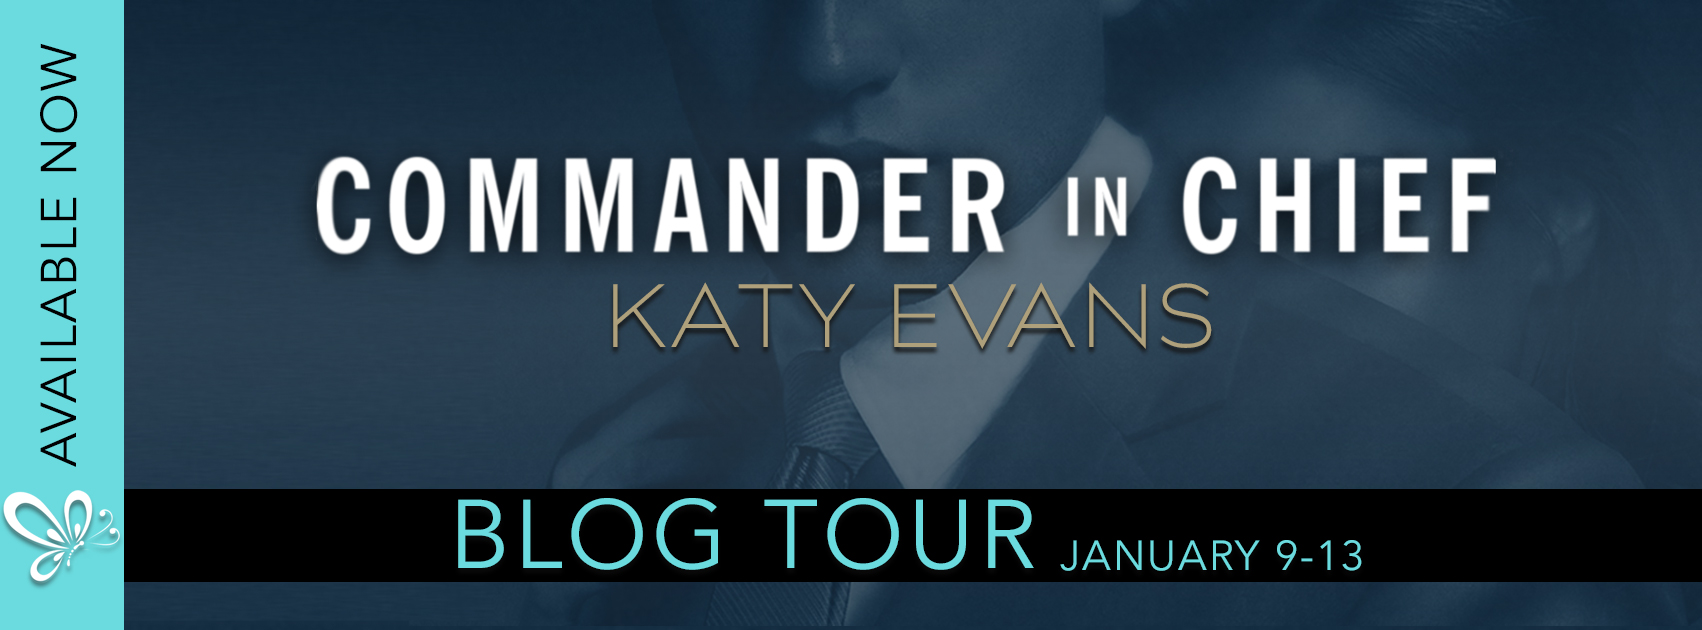 Blog Tour: Commander in Chief